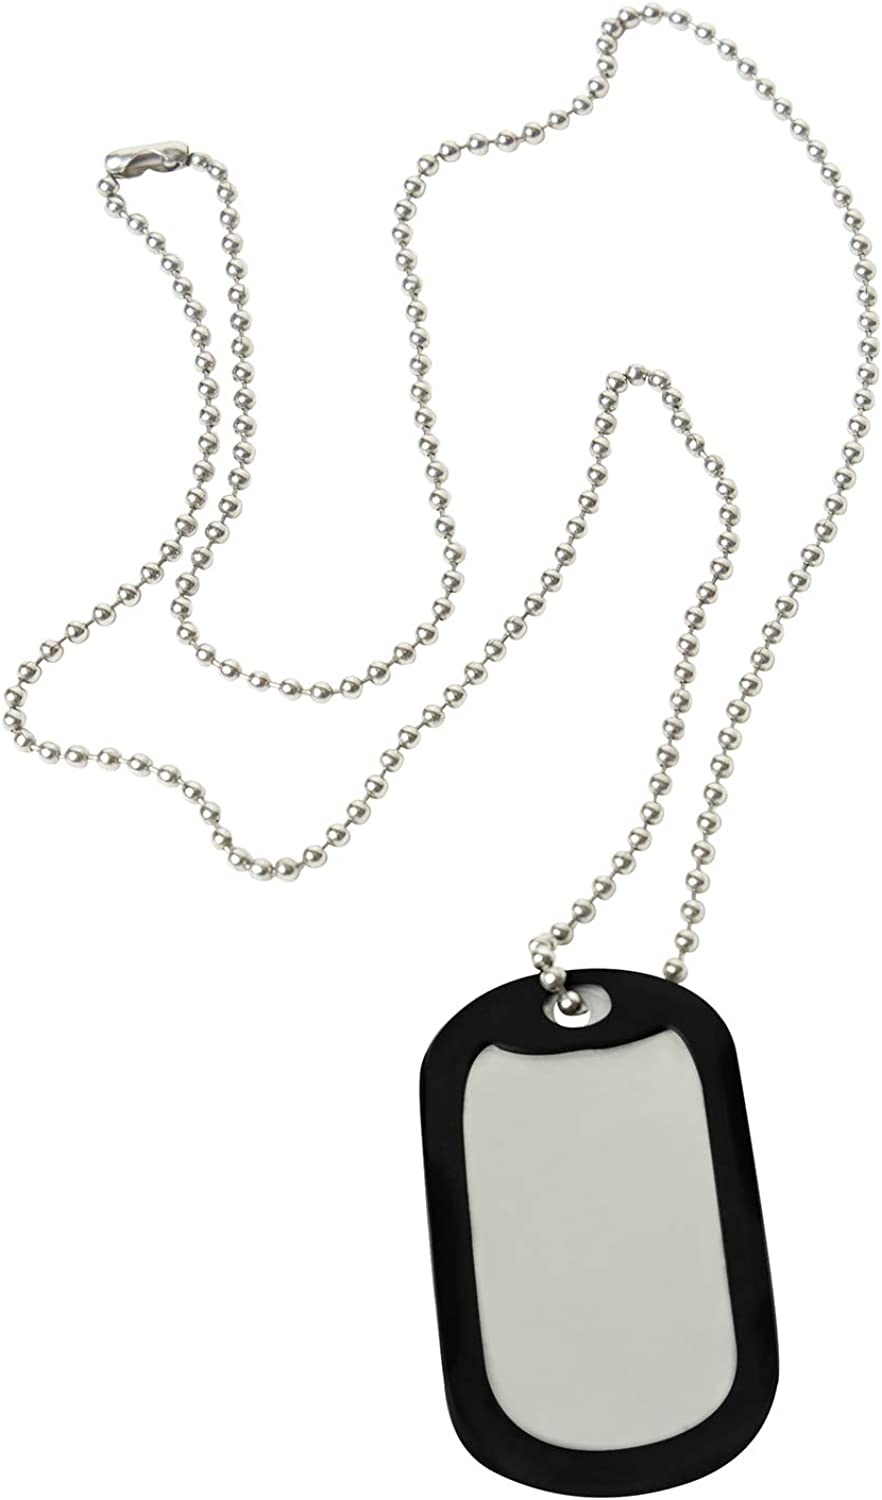 Amazon.com: Rothco Stainless Steel Military Dog Tag Set With Dog Tag, Chain  & Silencer: Clothing